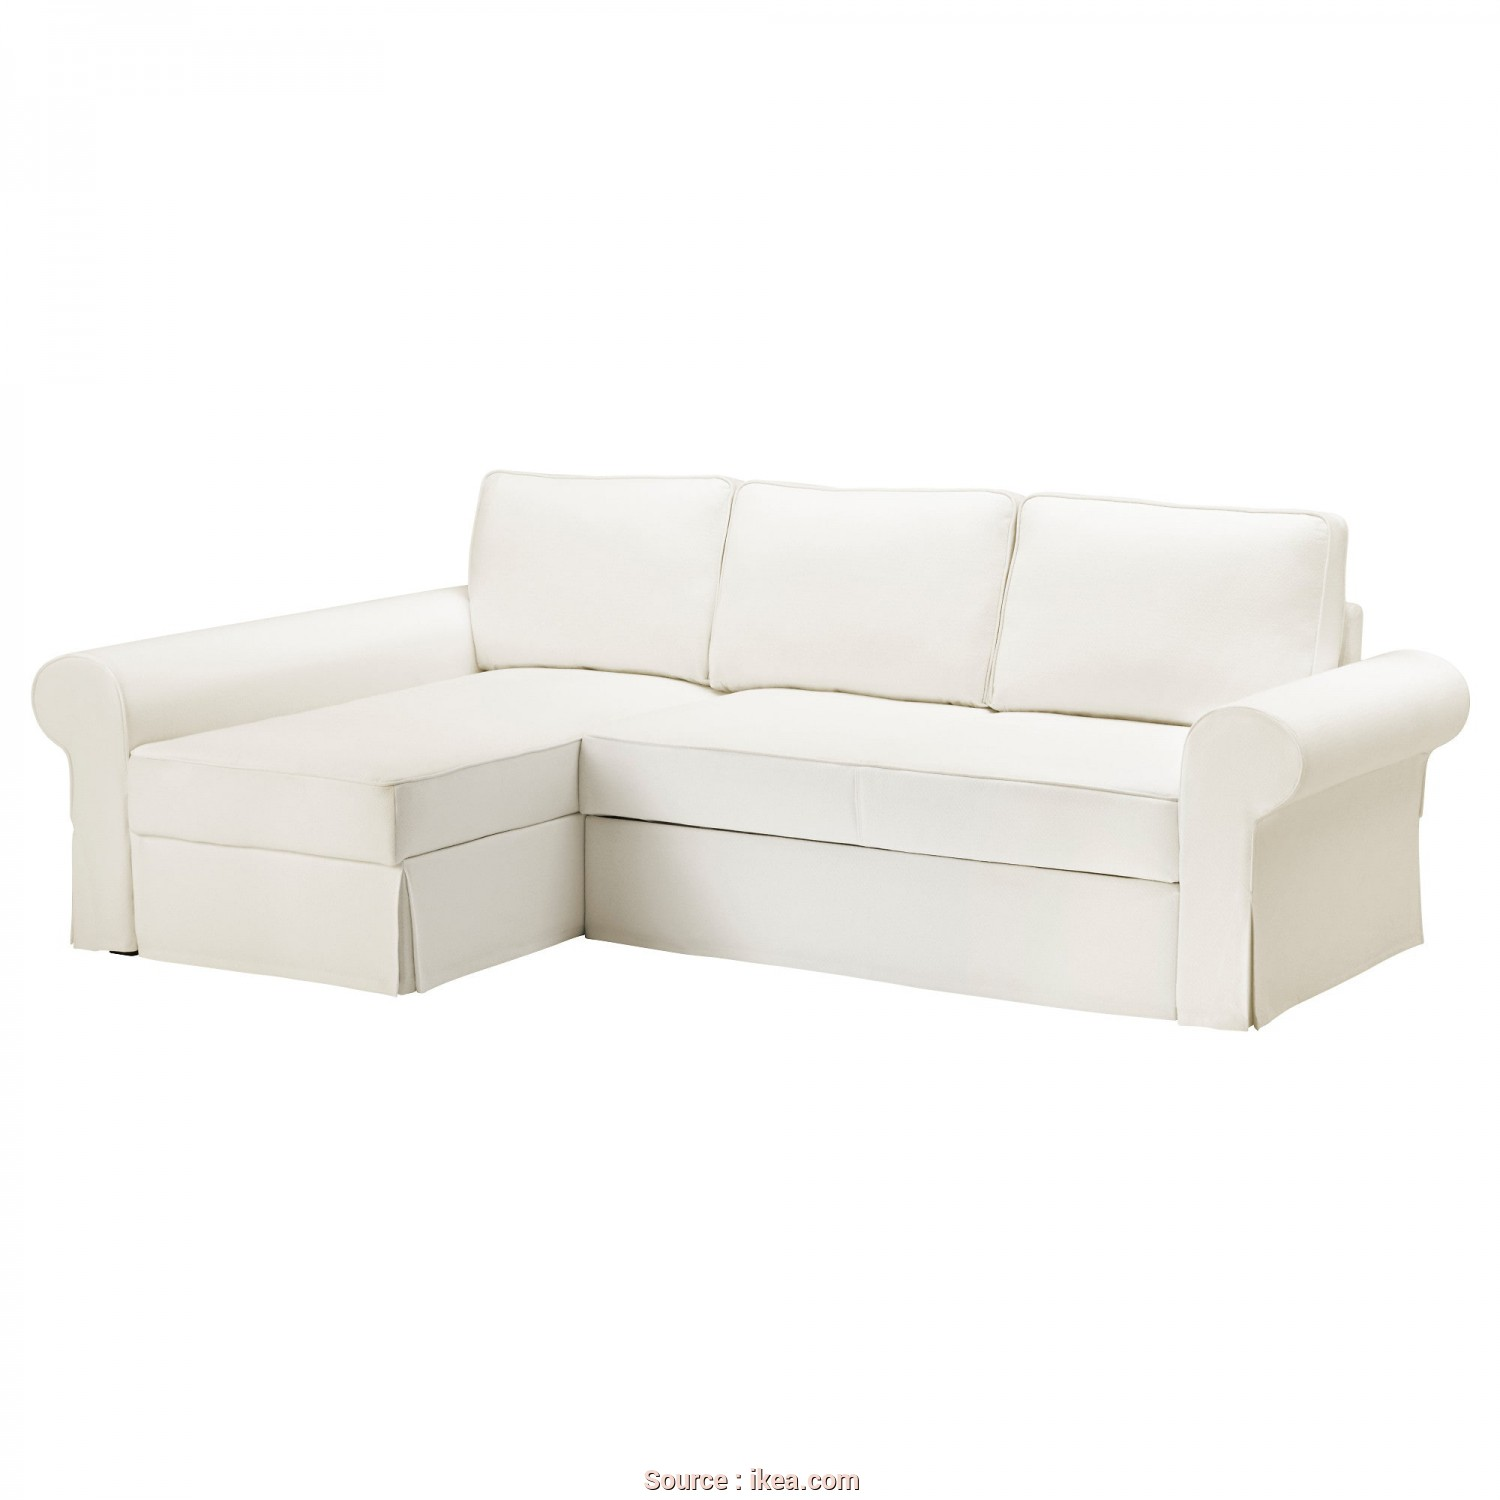 Backabro Ikea Cover, Deale BACKABRO Cover Sofa-Bed With Chaise Longue Hylte White